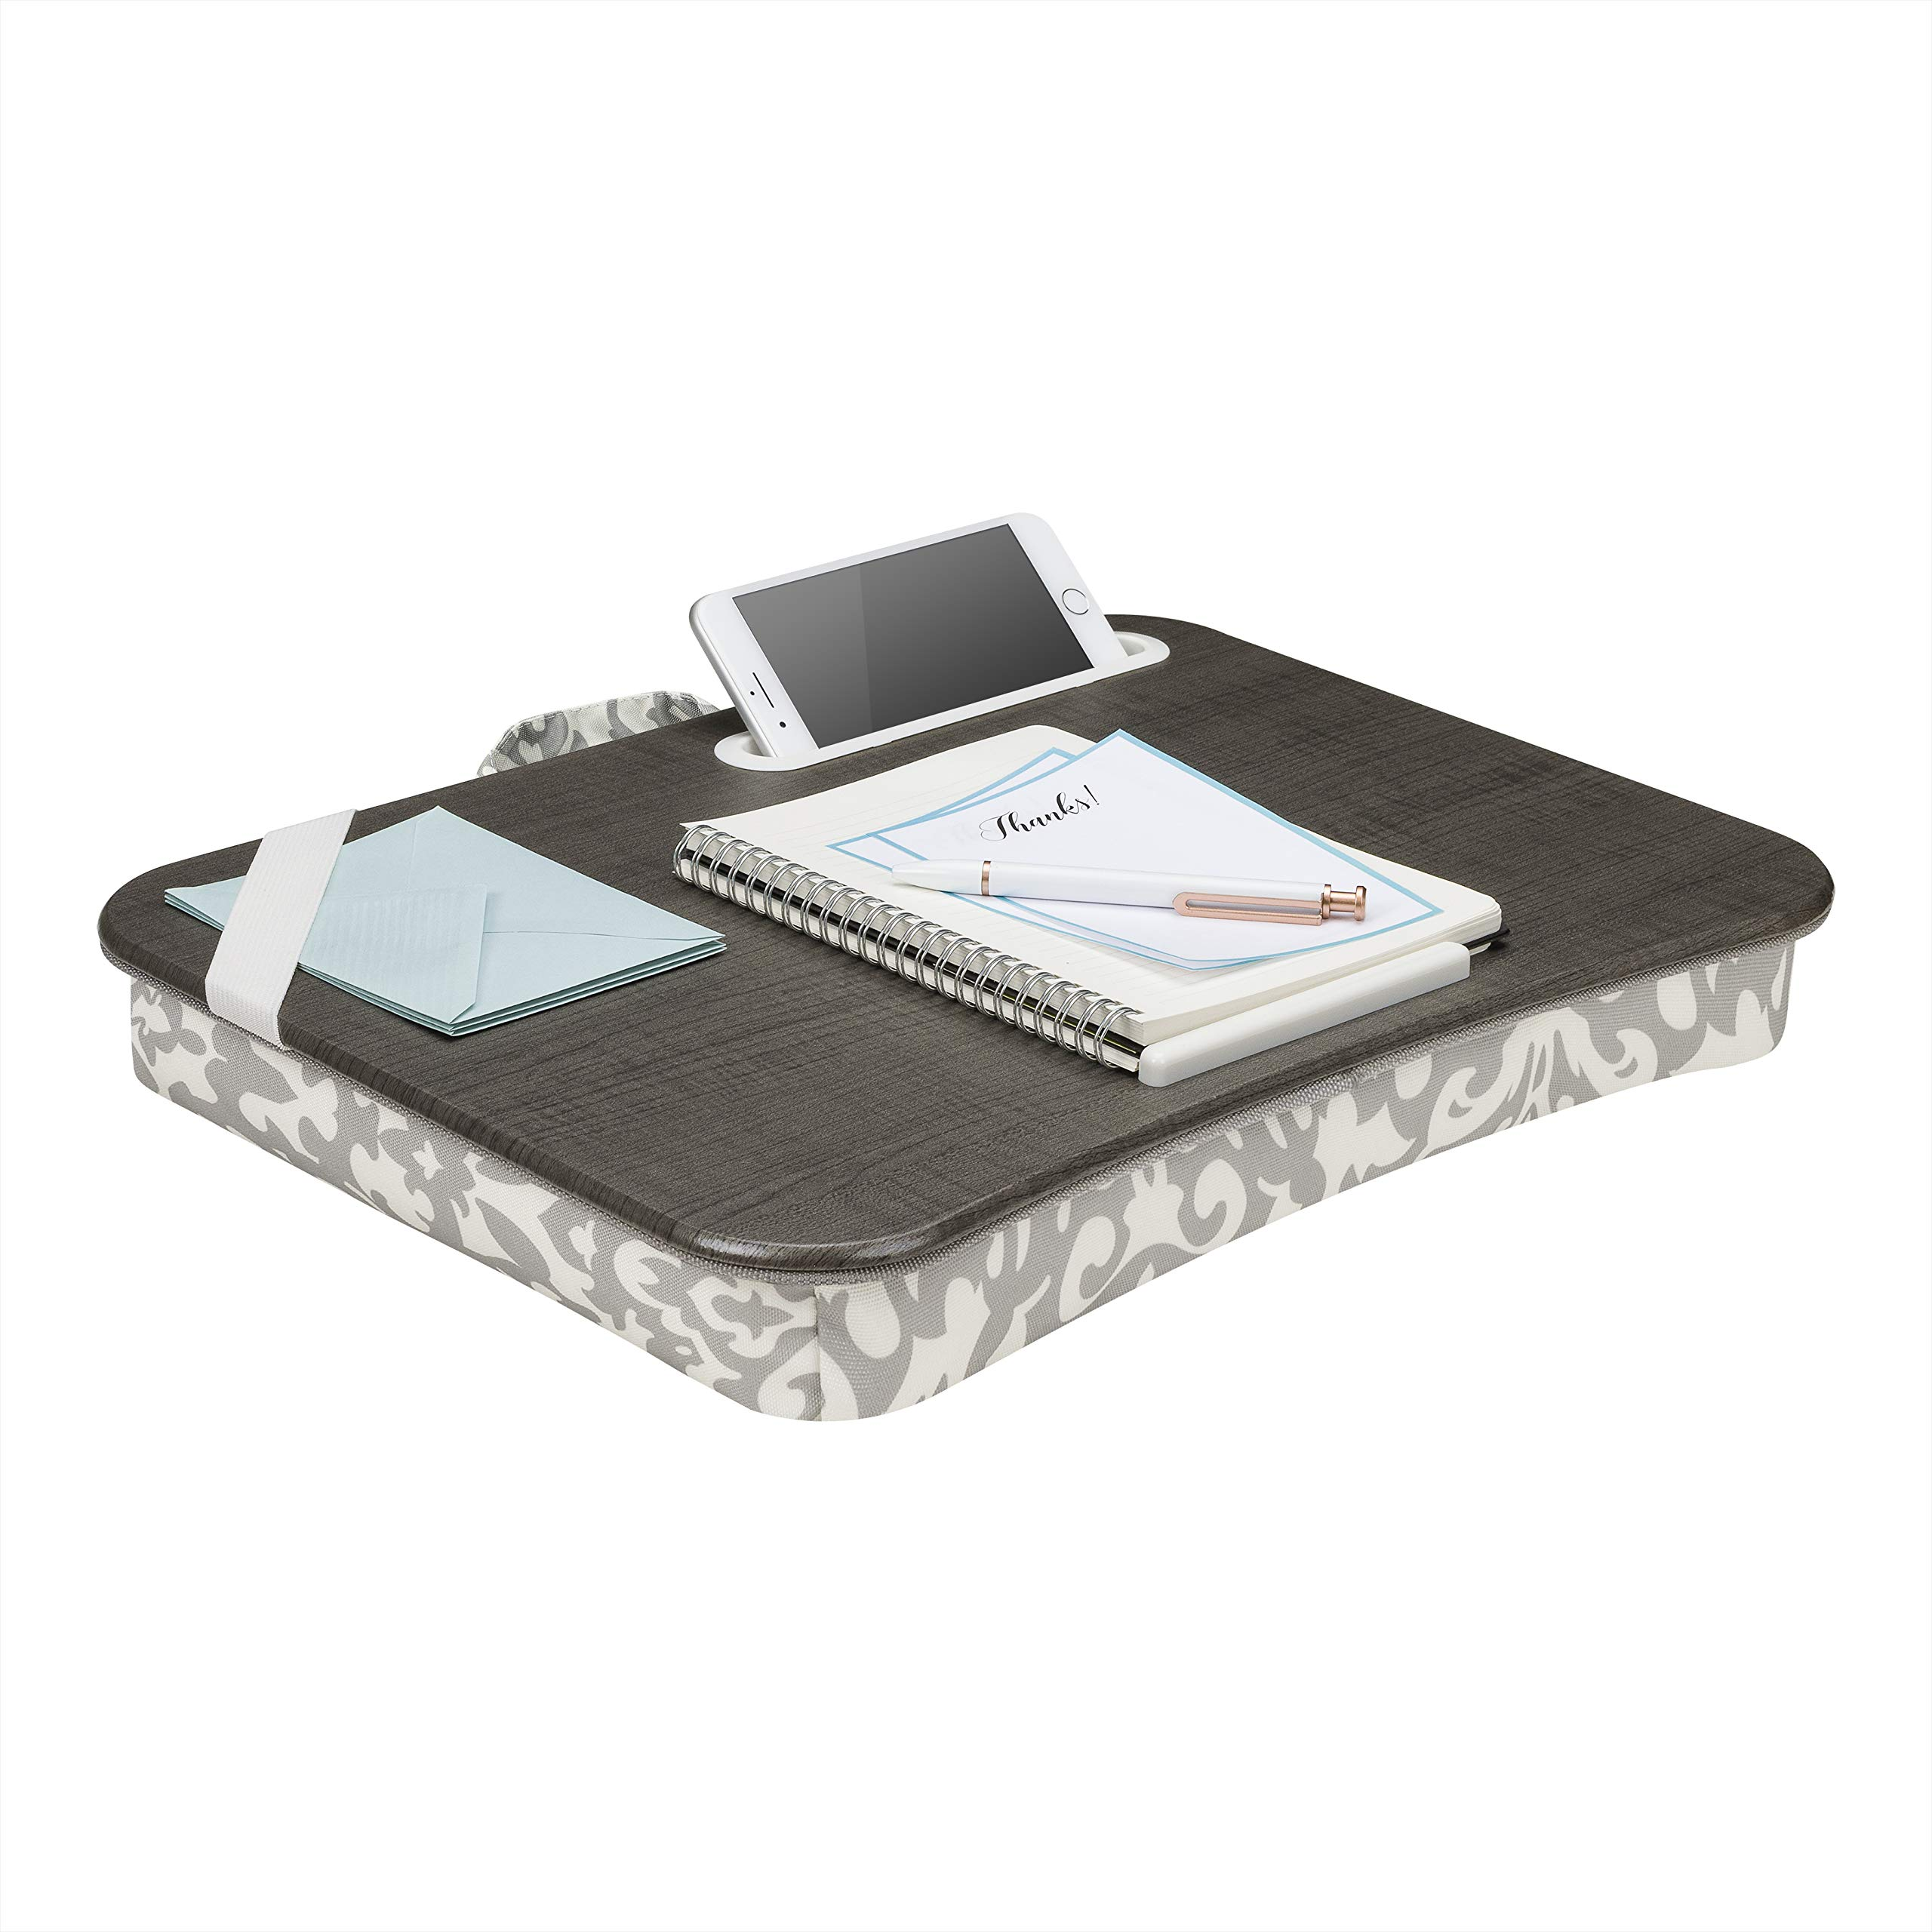 LapGear Designer Lap Desk with phone holder - Gray Damask - Fits up to 17.3 Inch laptops - Style No. 45424